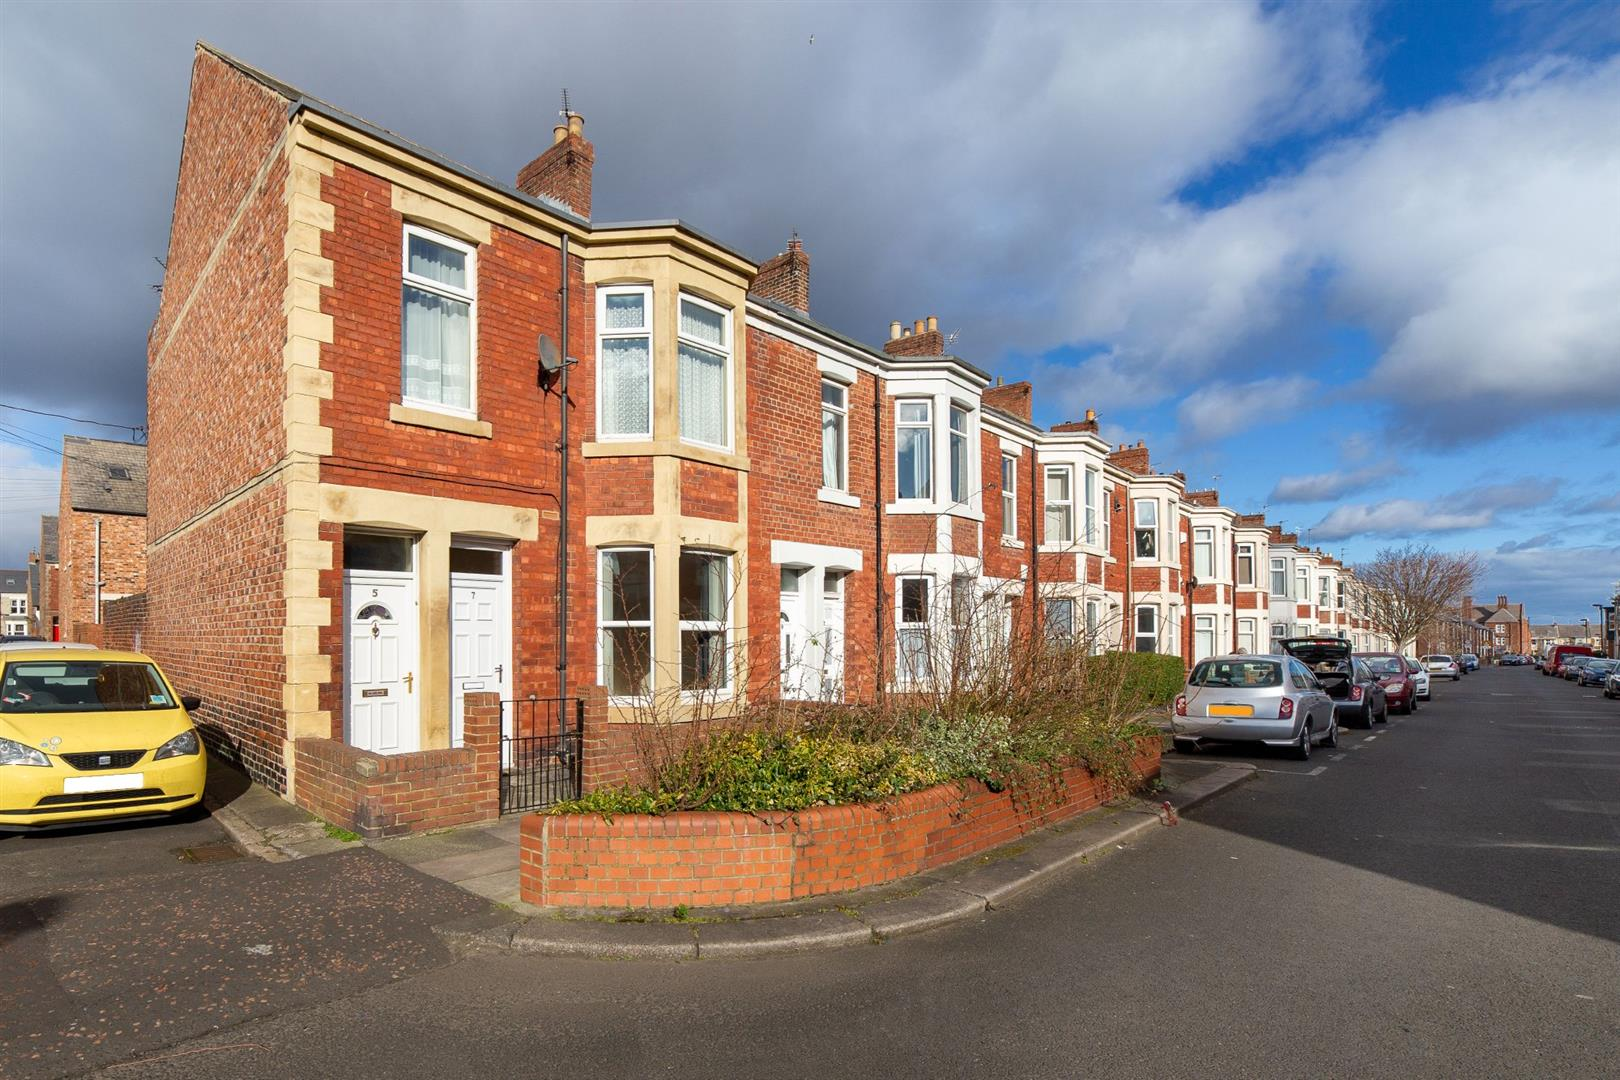 3 bed flat for sale in Newcastle Upon Tyne, NE6 5XY - Property Image 1